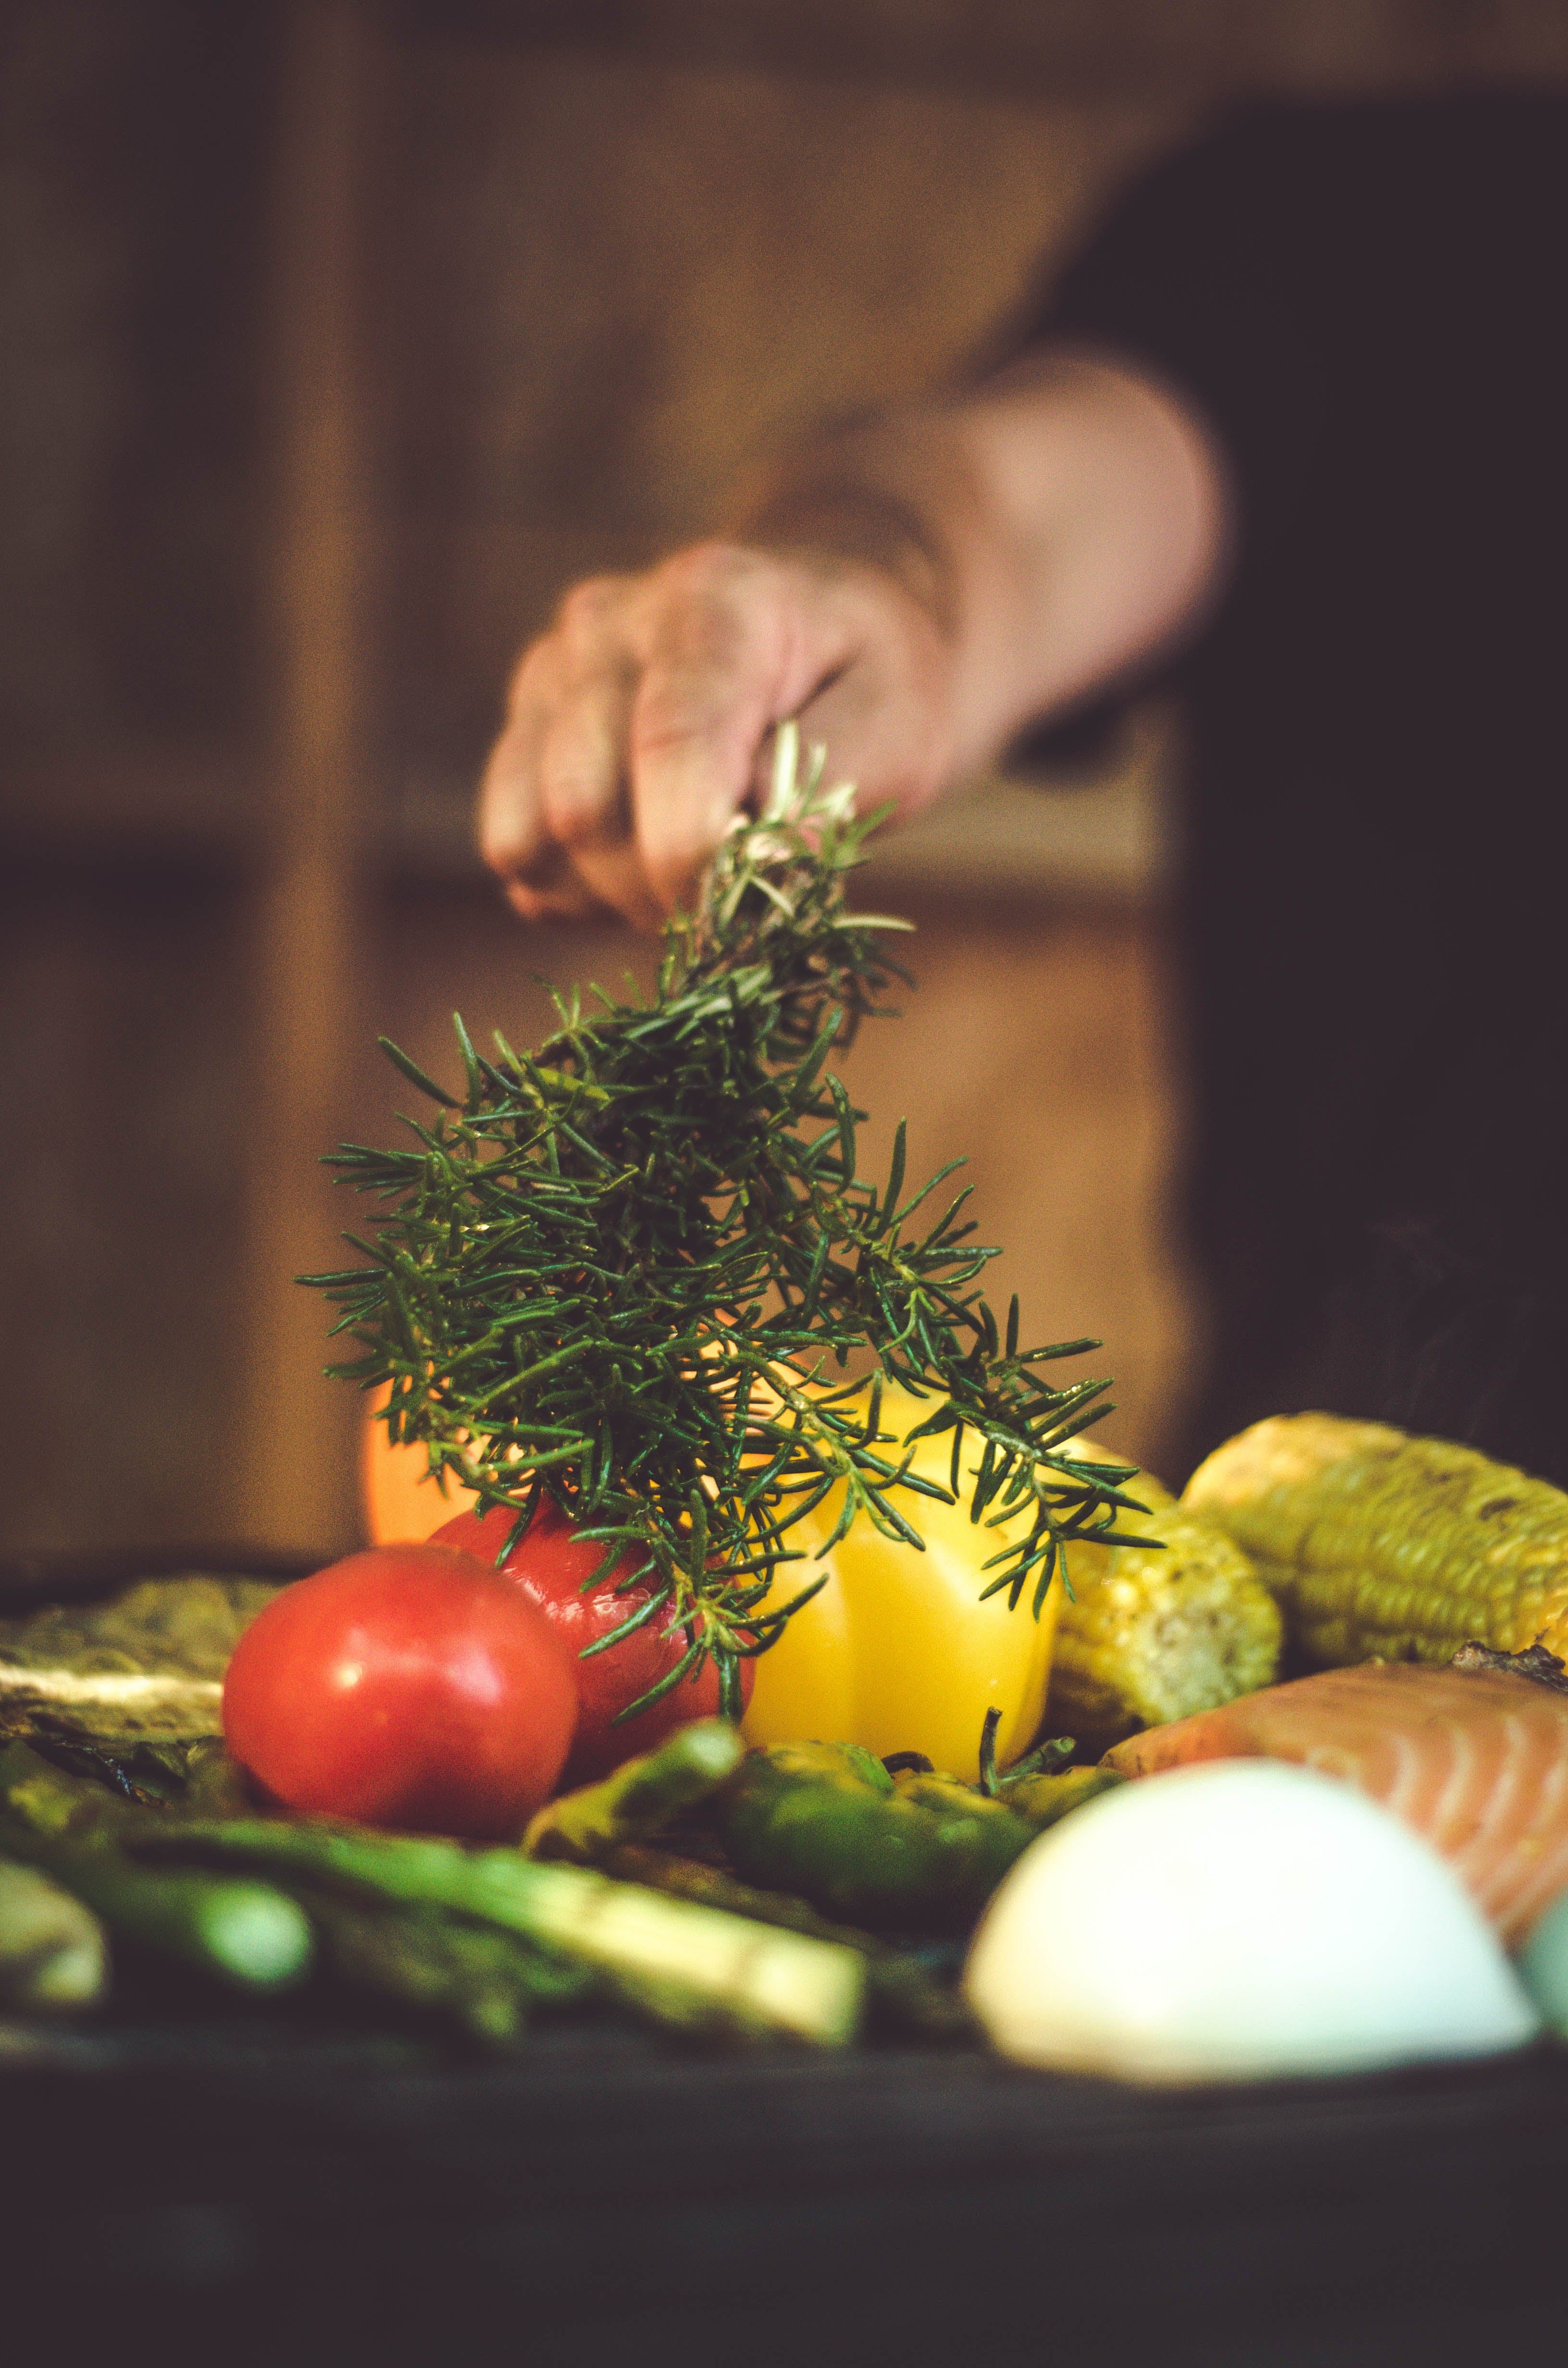 Person Putting Rosemary Into Vegetable Dish